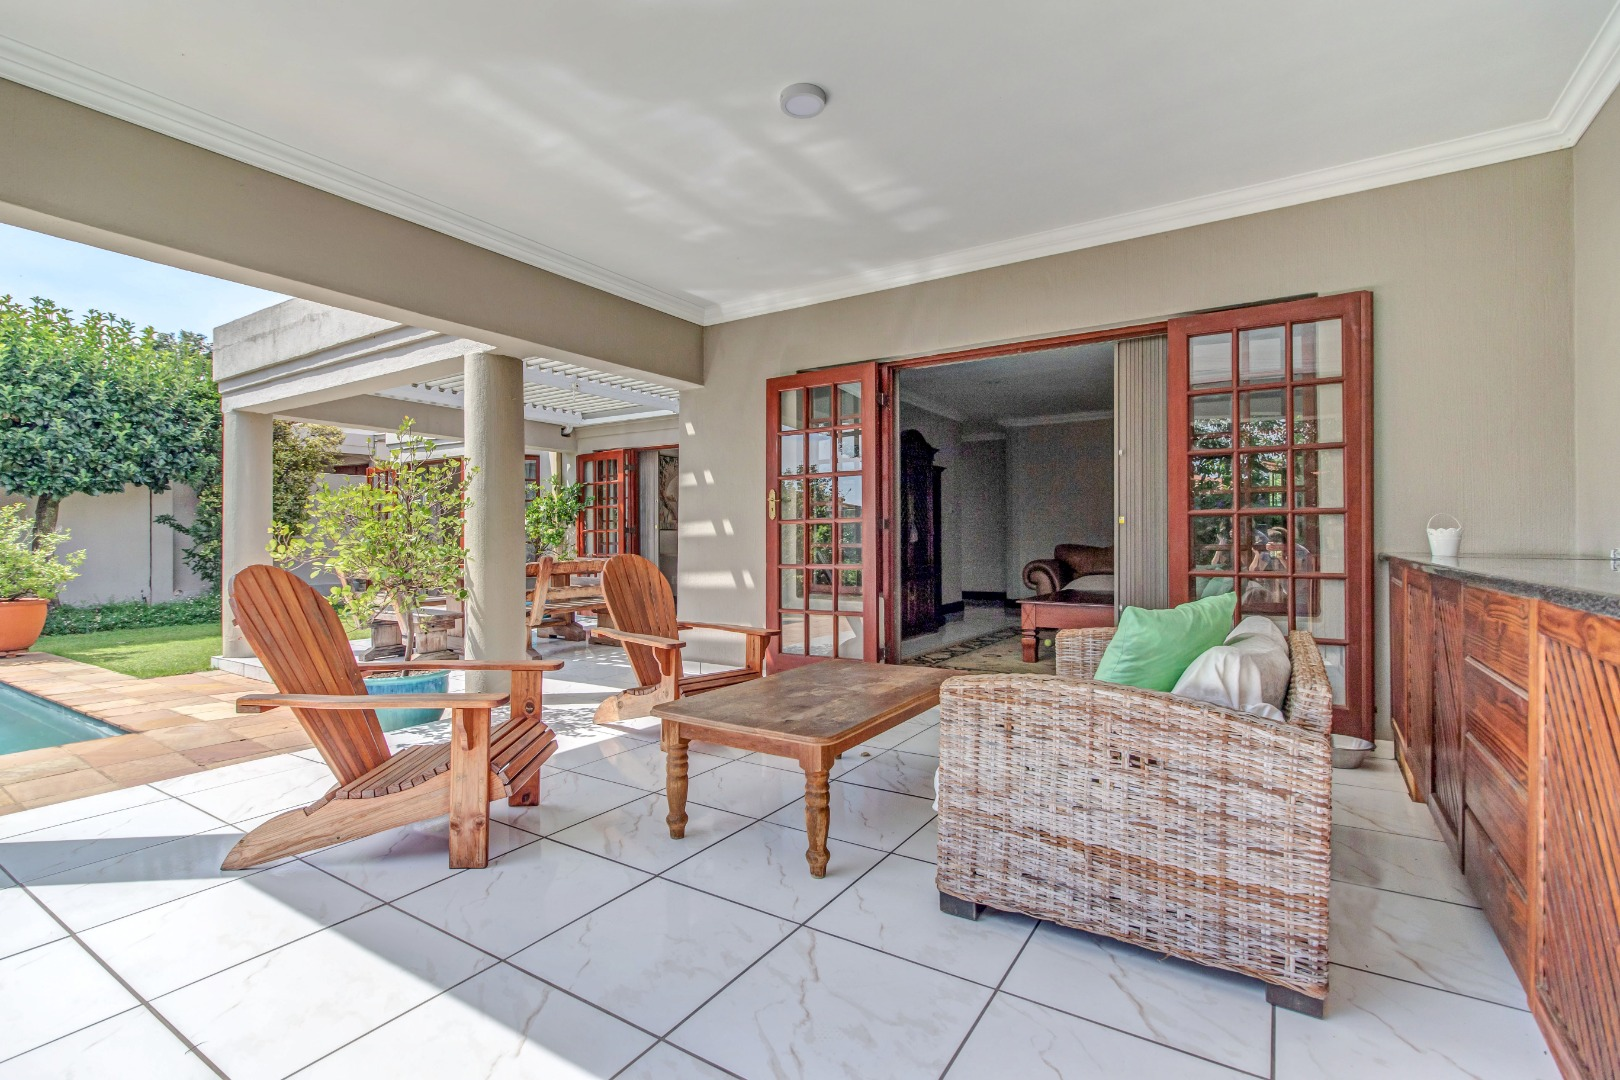 3 Bedroom House For Sale in Douglasdale